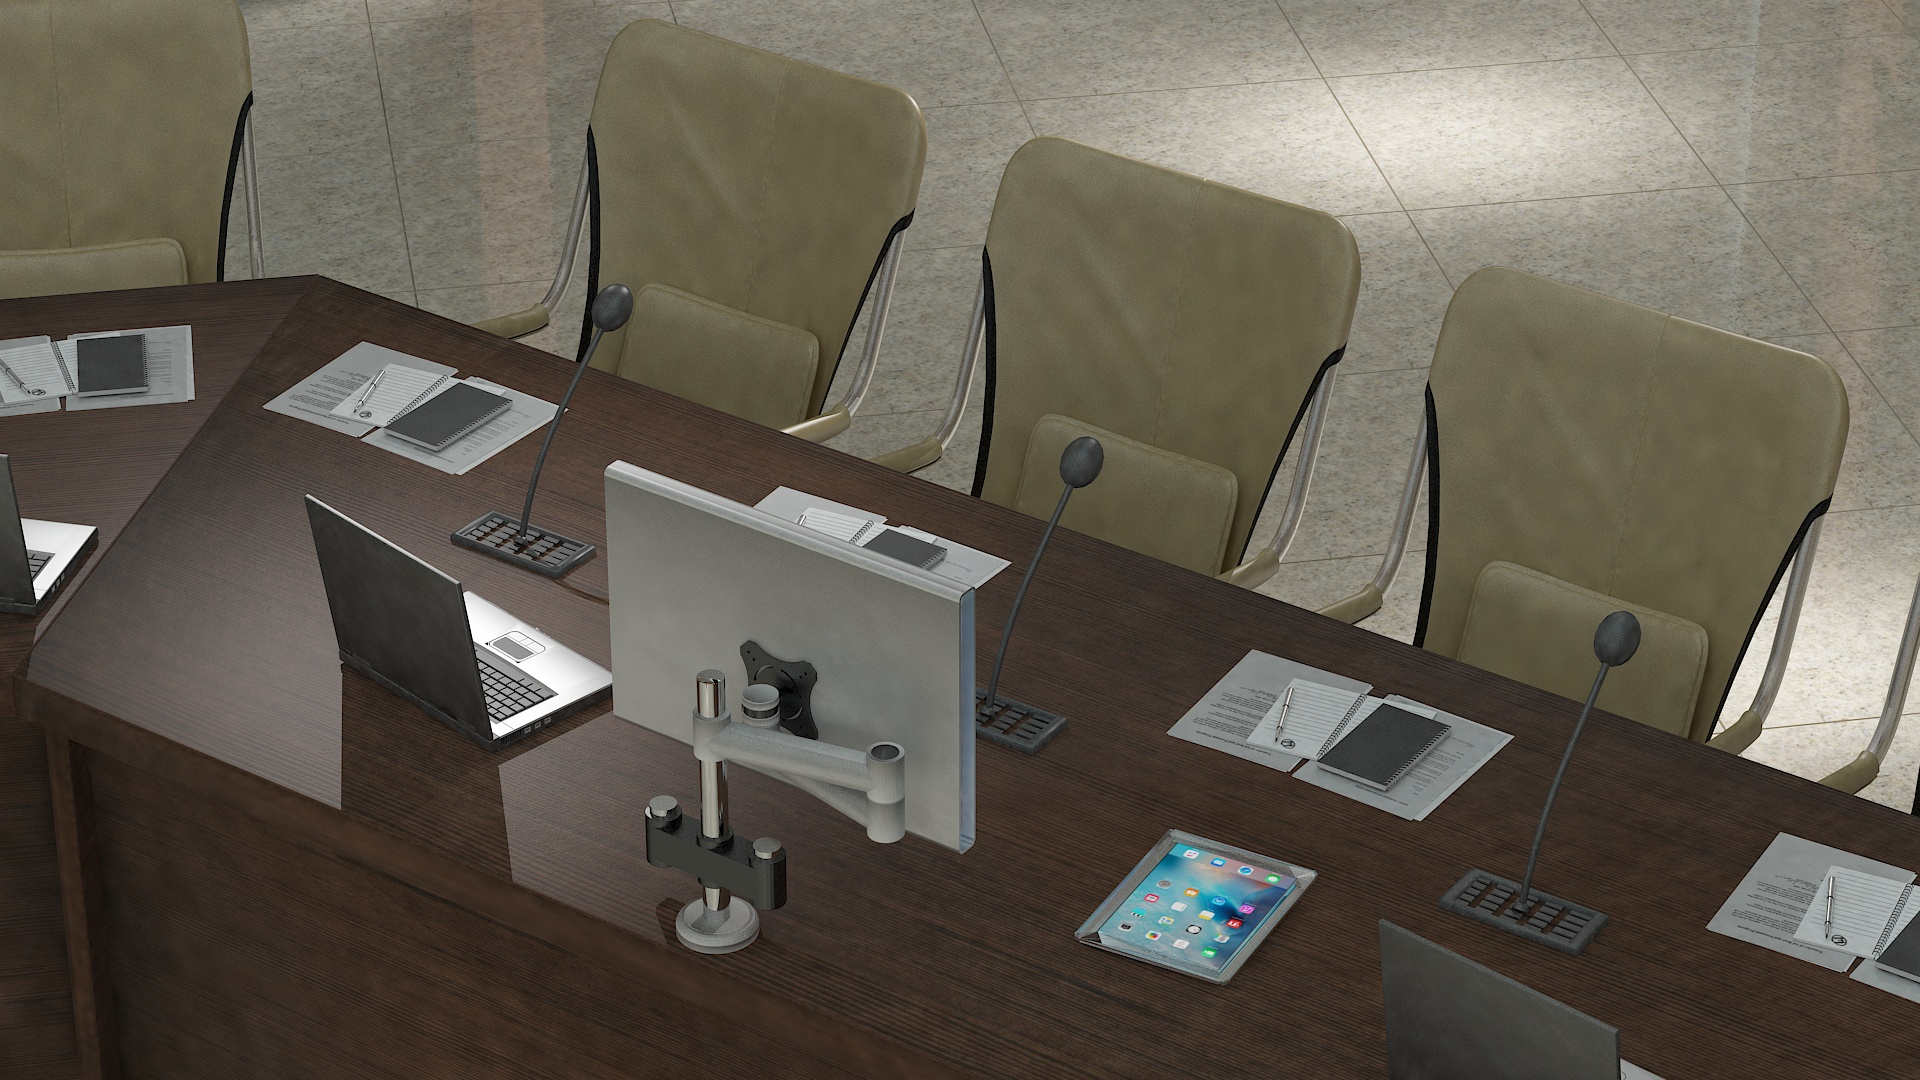 meeting room 1 3d model 3ds max dxf dwg 288143